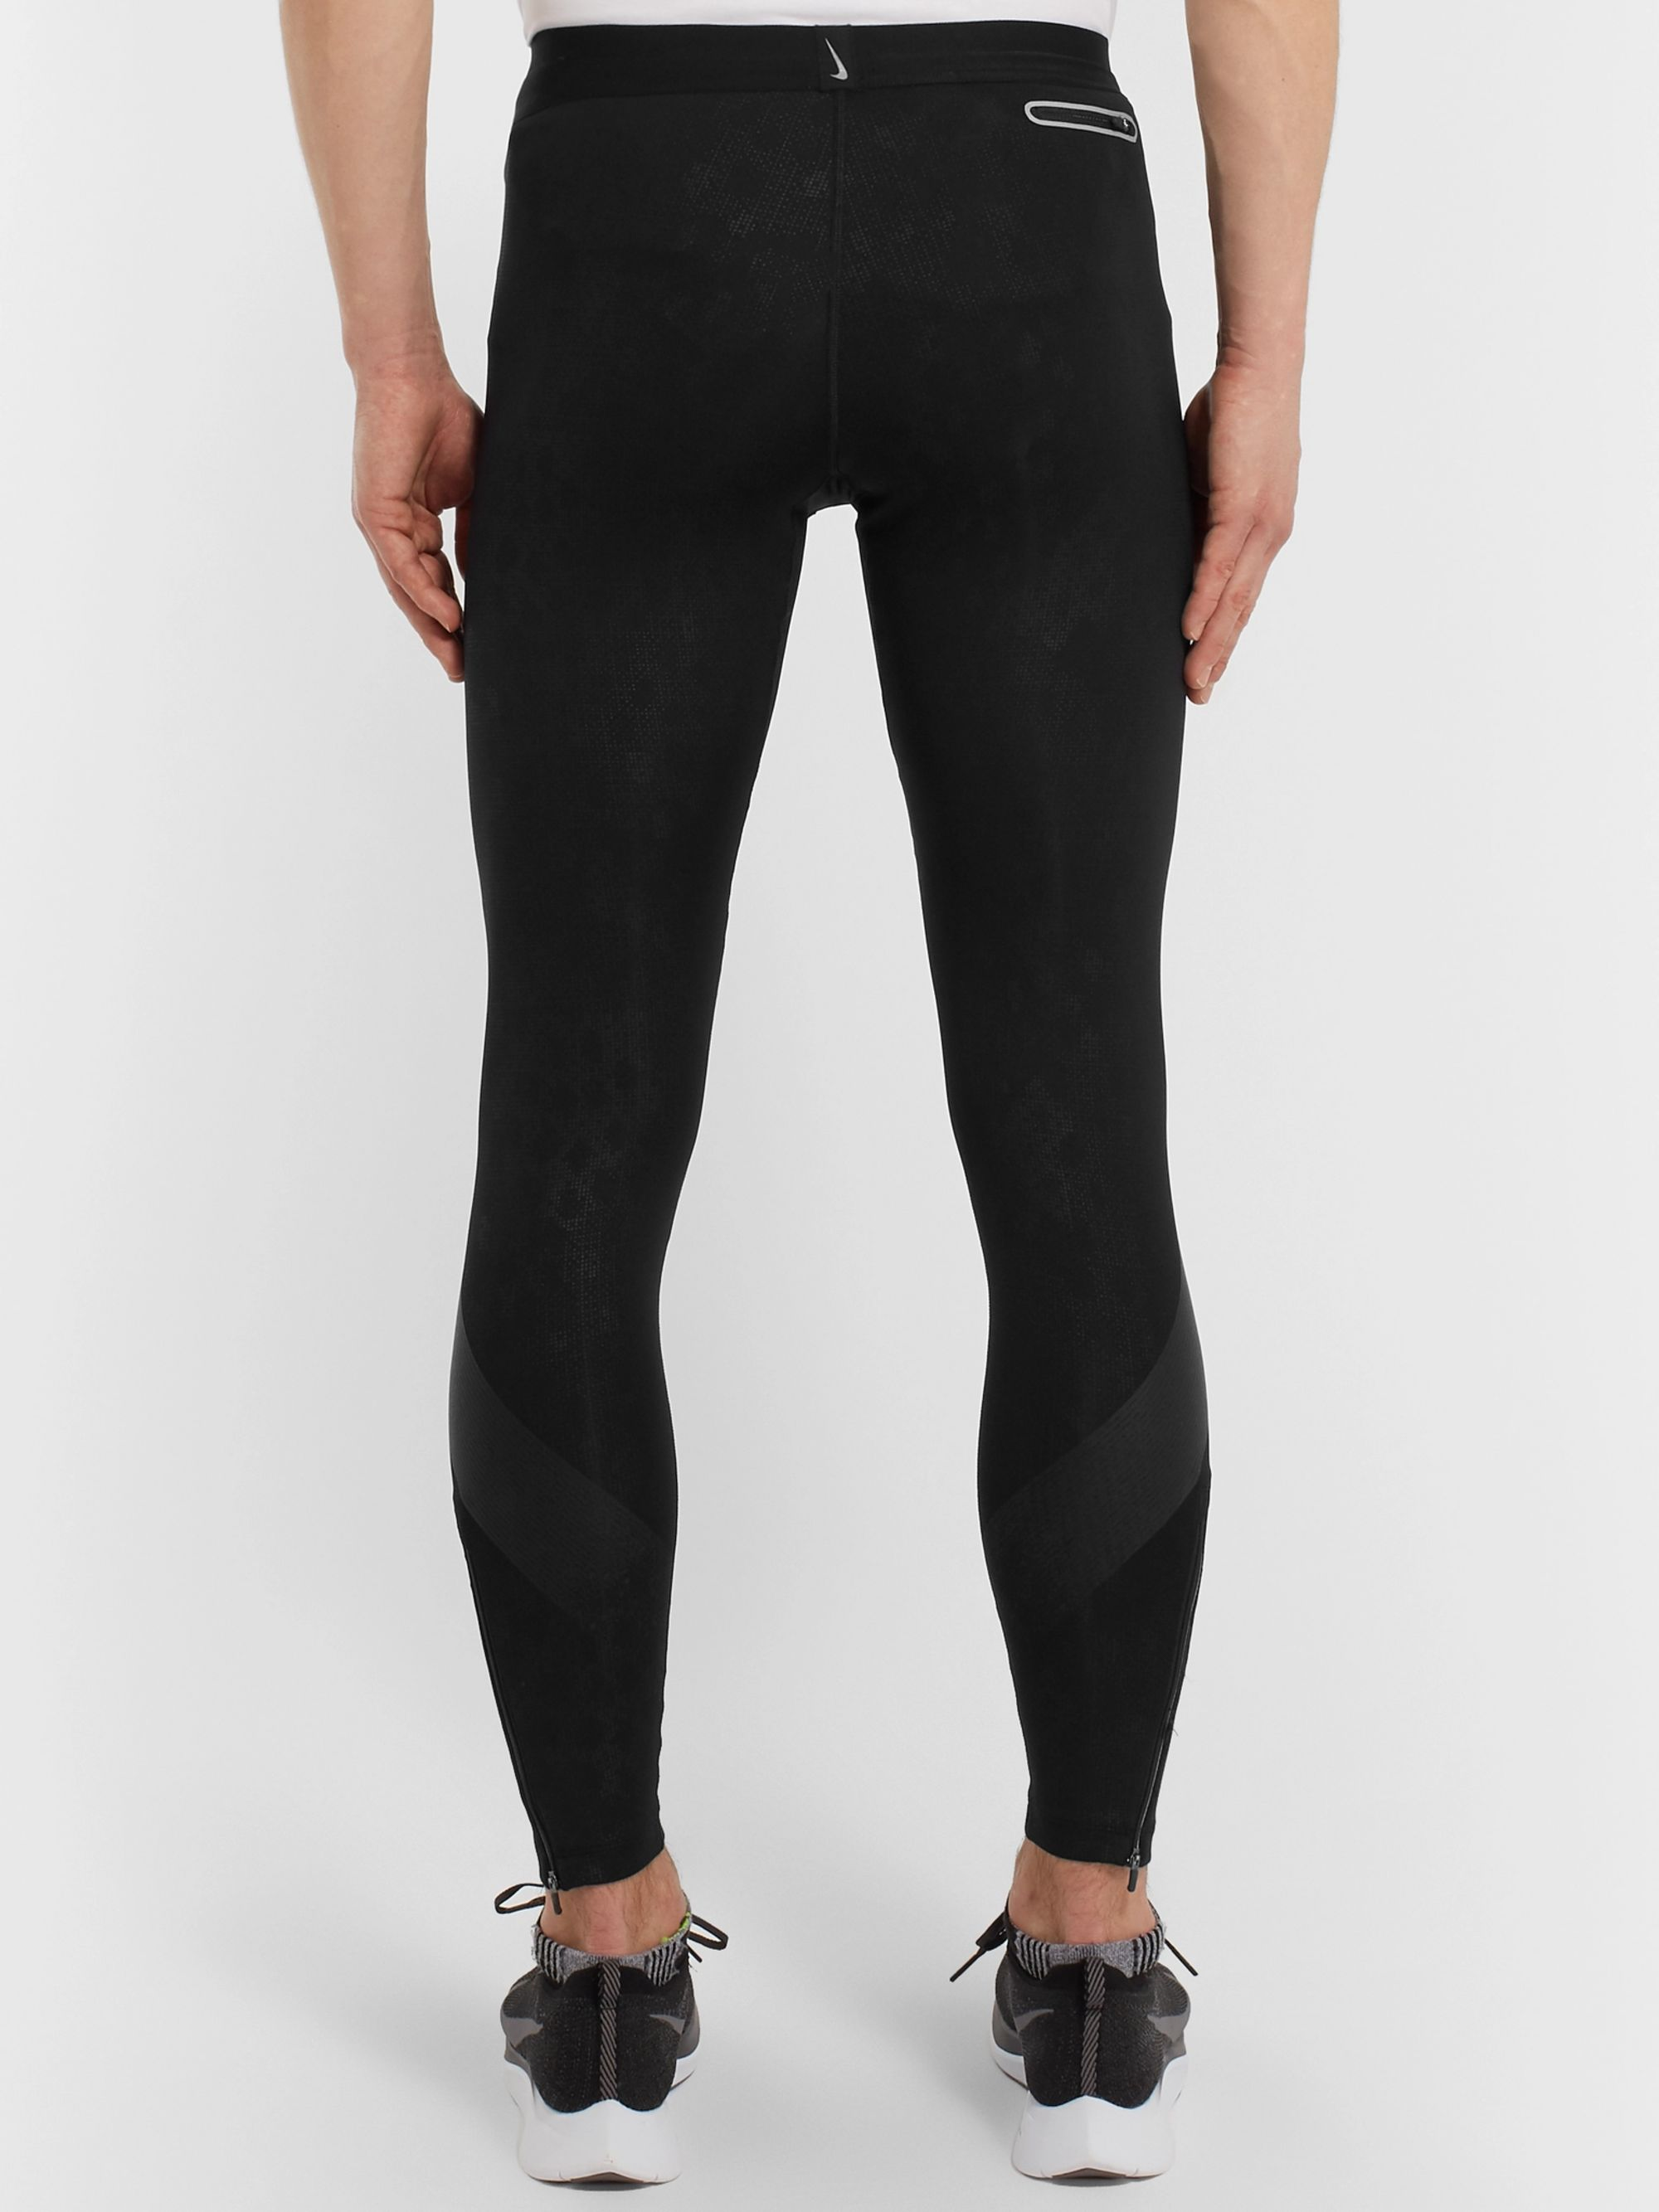 Nike Running Power Tech Dri-FIT Running Tights